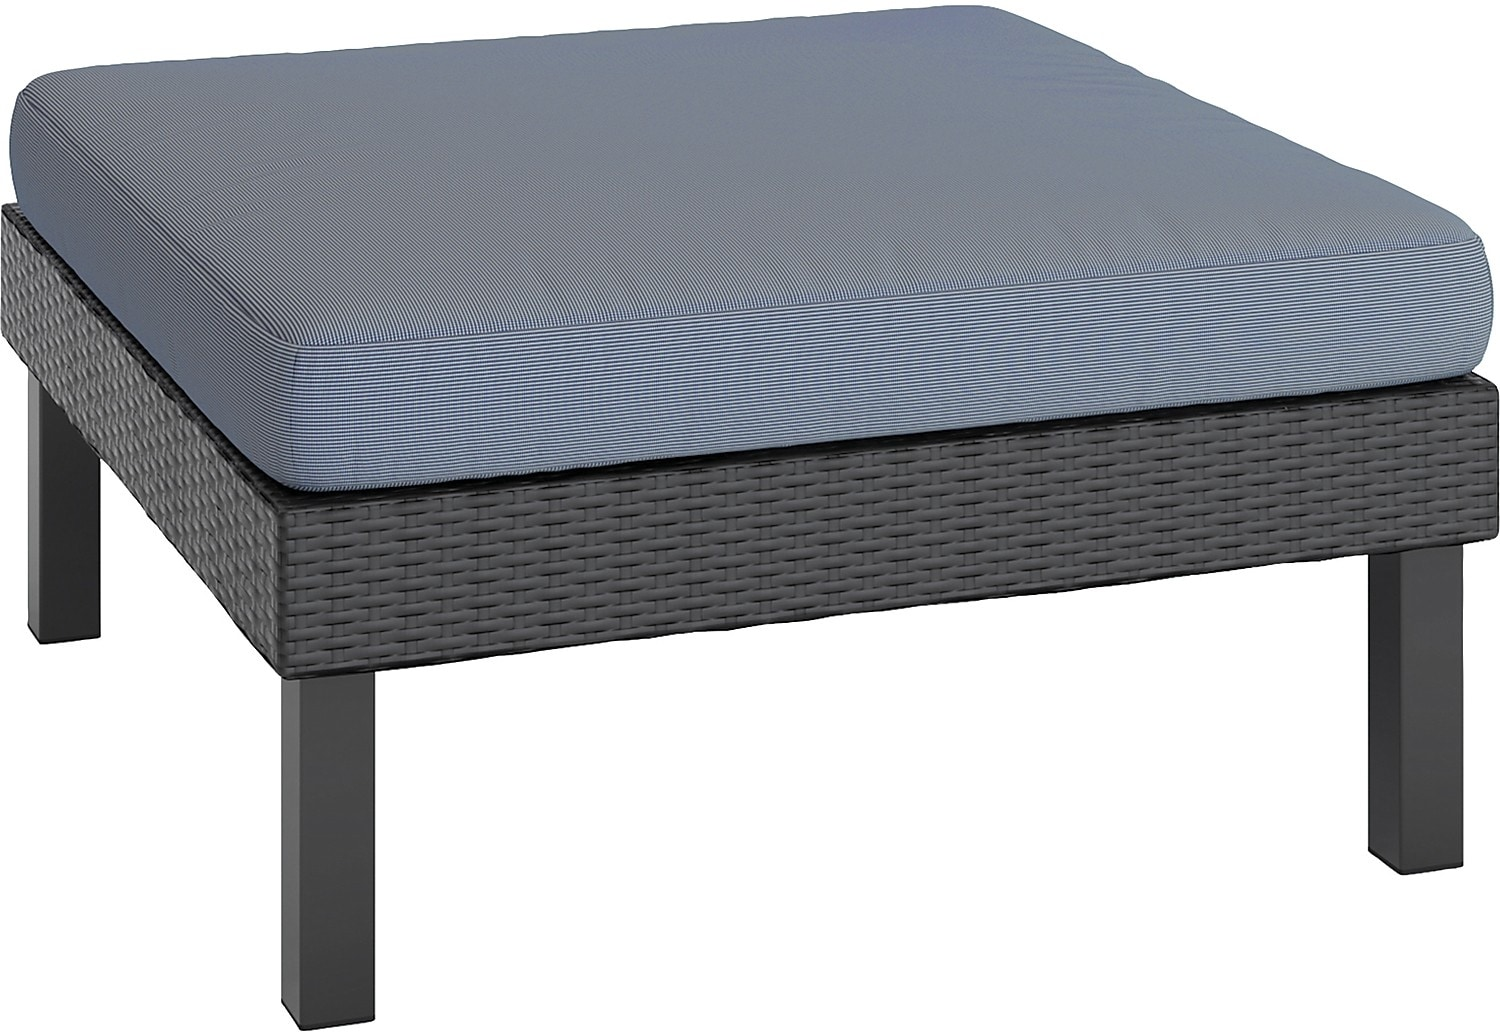 Outdoor Furniture - Oceanside Patio Ottoman